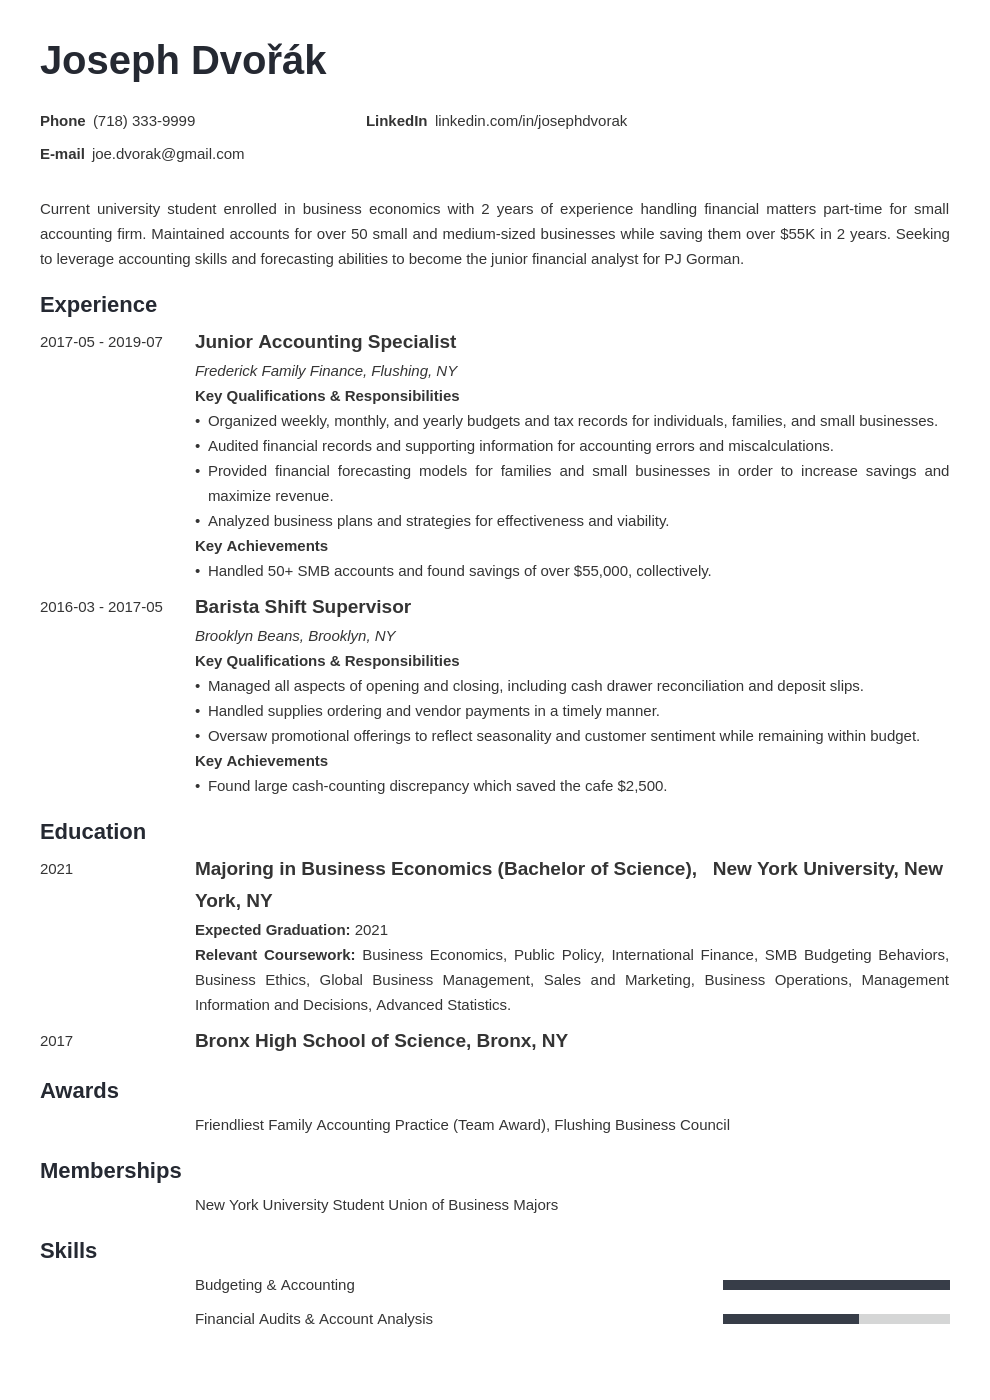 Undergraduate Student Resume from cdn-images.zety.com